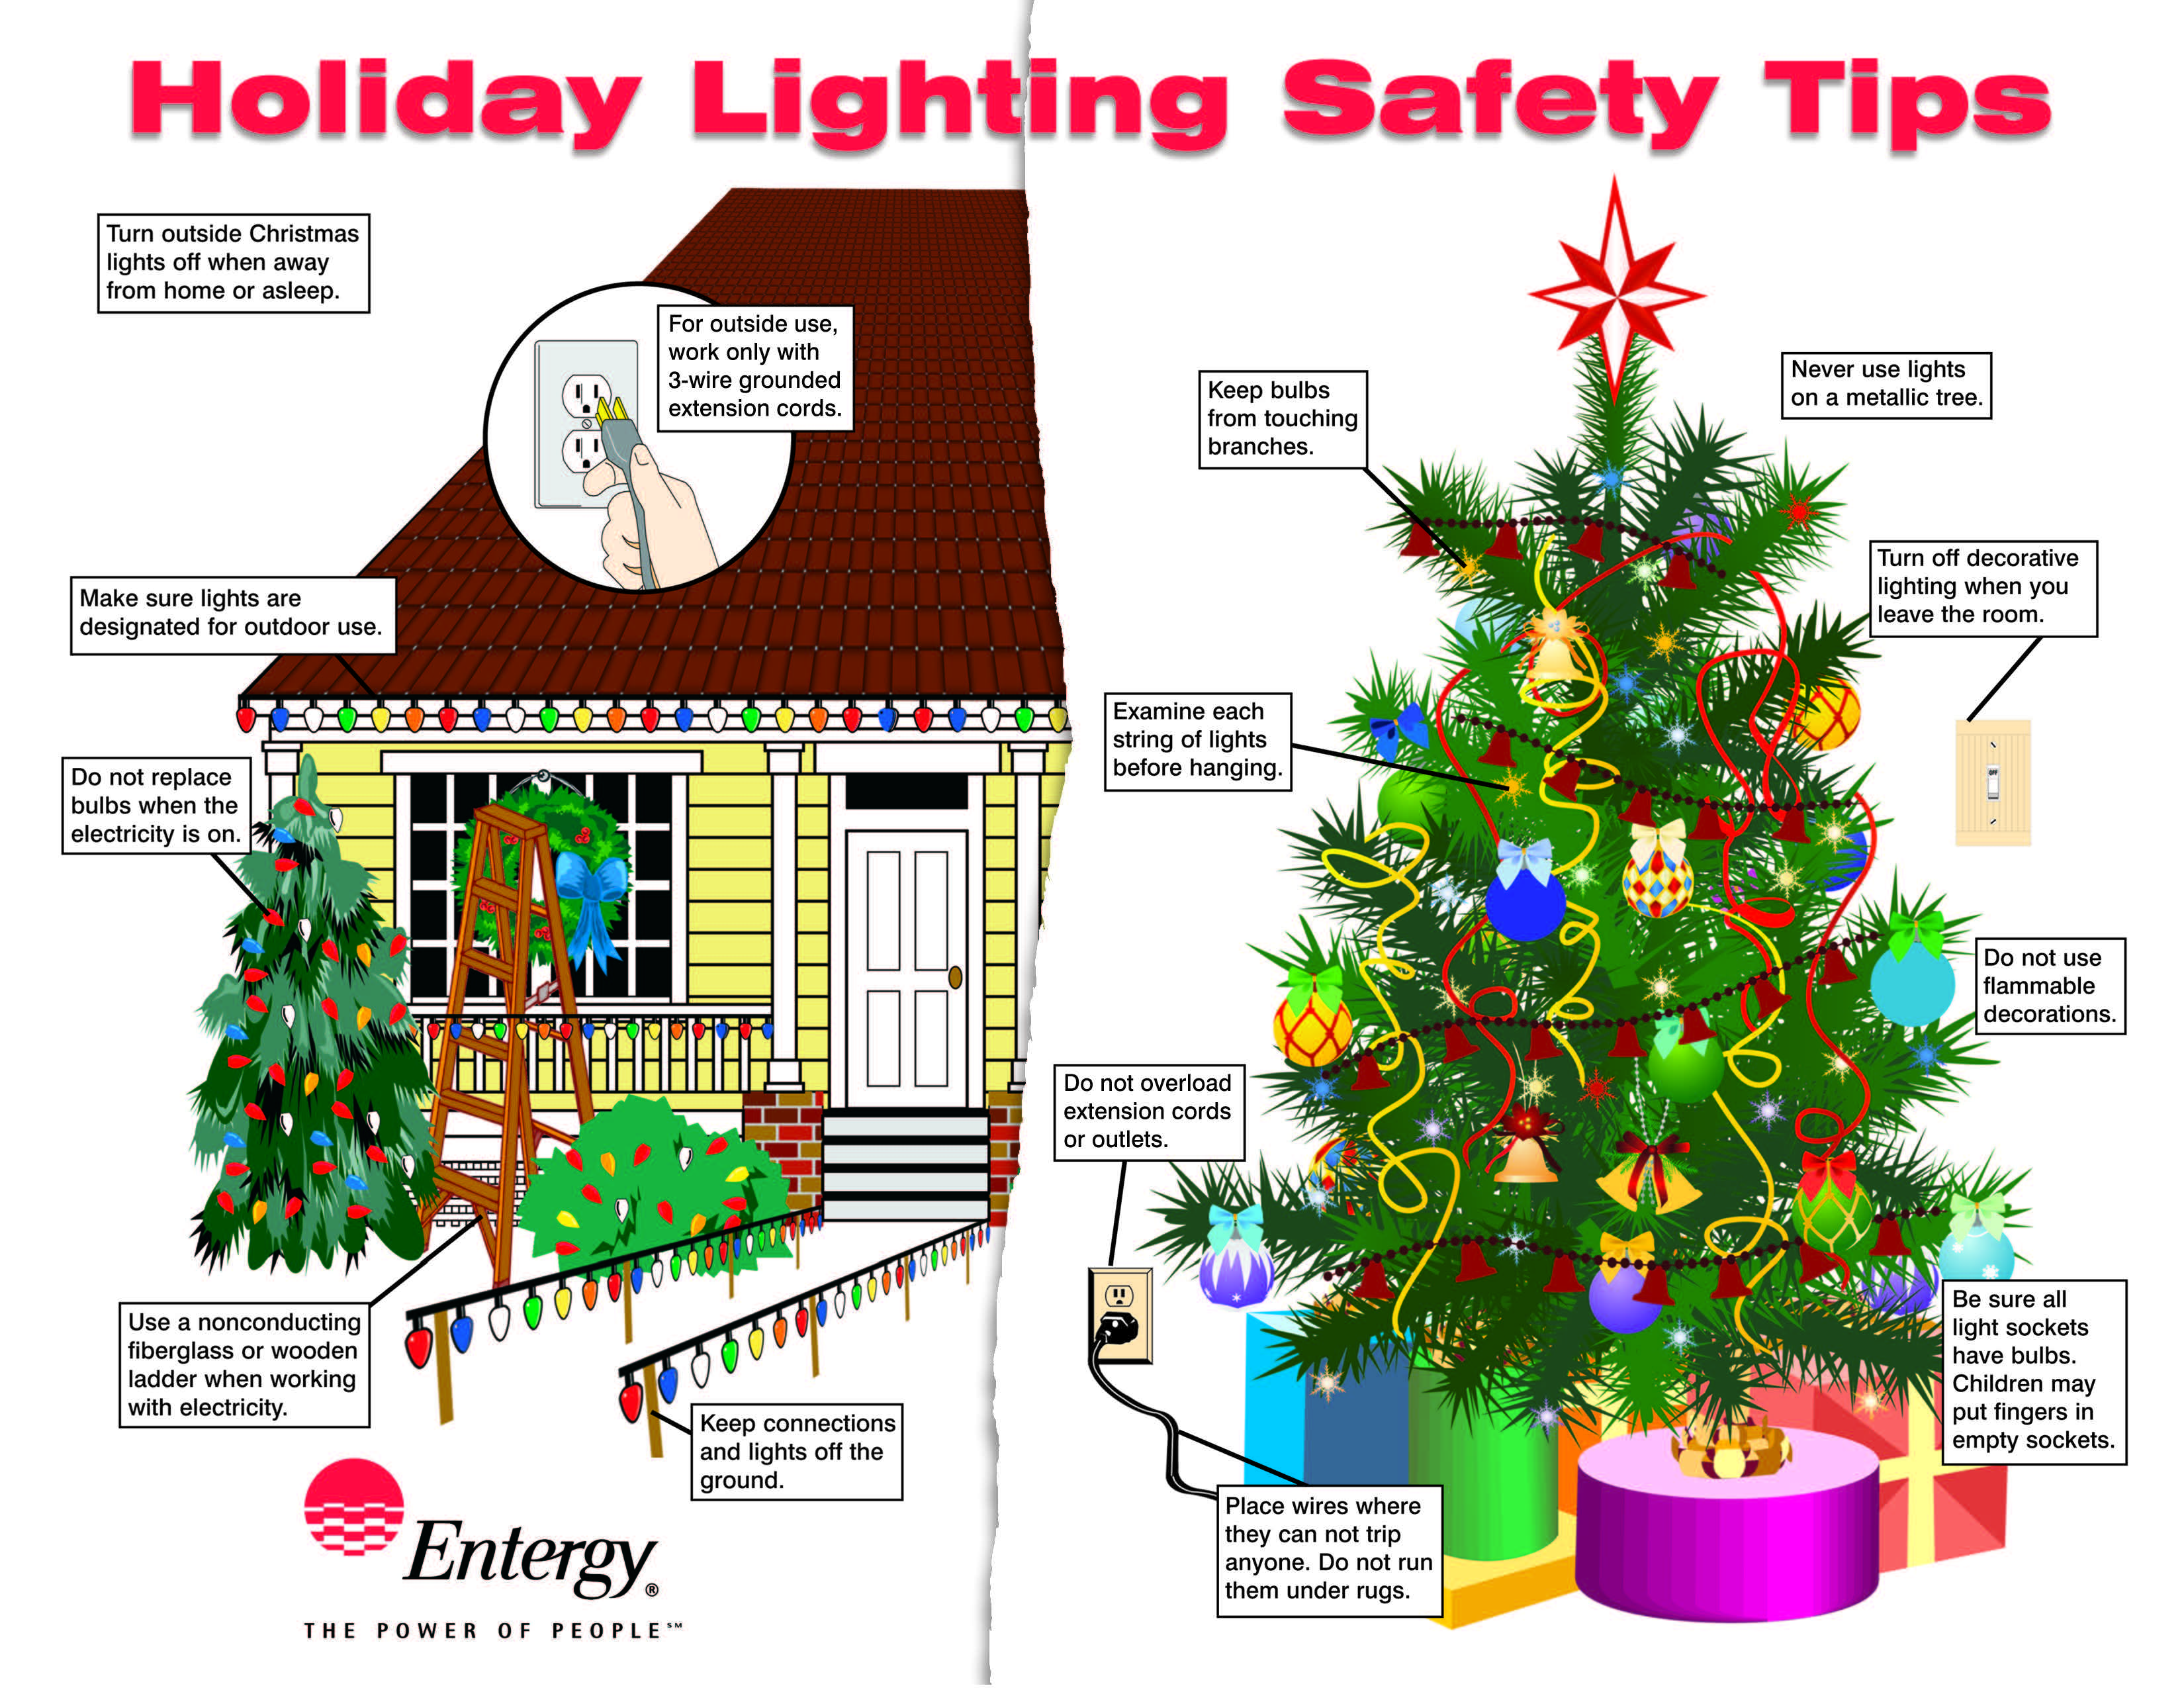 follow these important safety and energy saving tips and have a happy holiday season with your family neighbors and friends